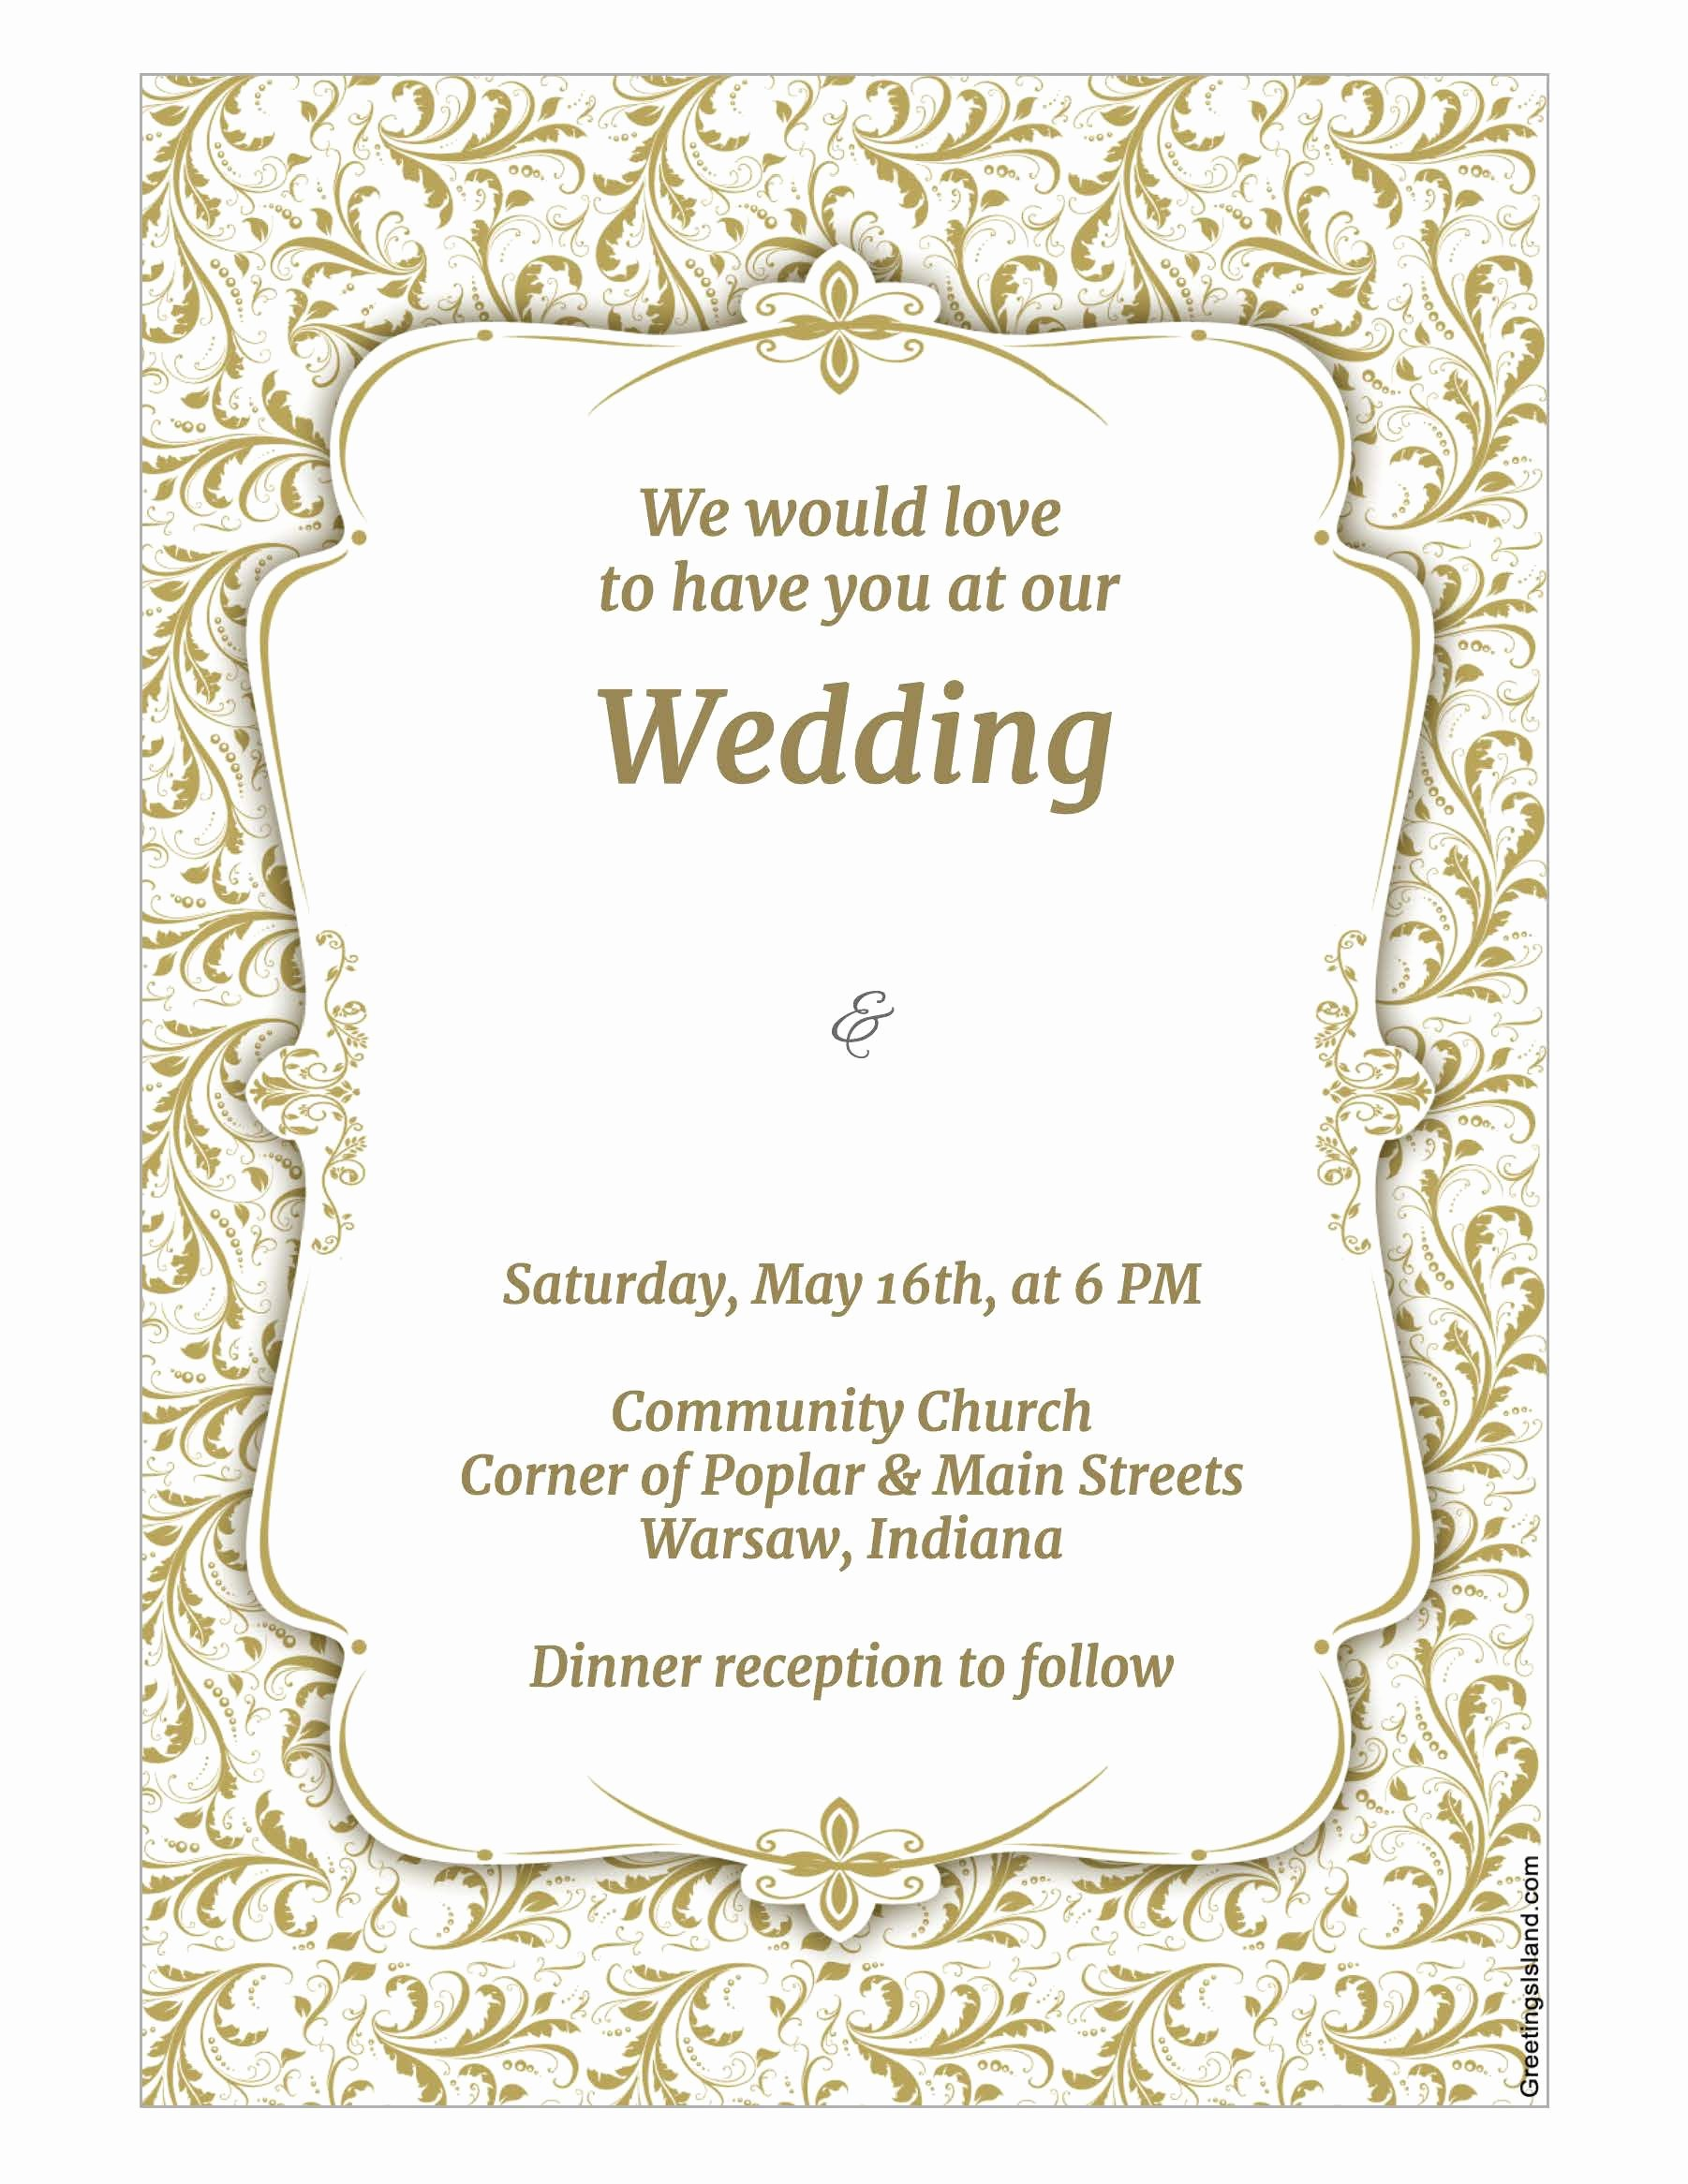 Photoshop Wedding Invitation Template Luxury Wedding Invitation Template Wedding Invitation Template